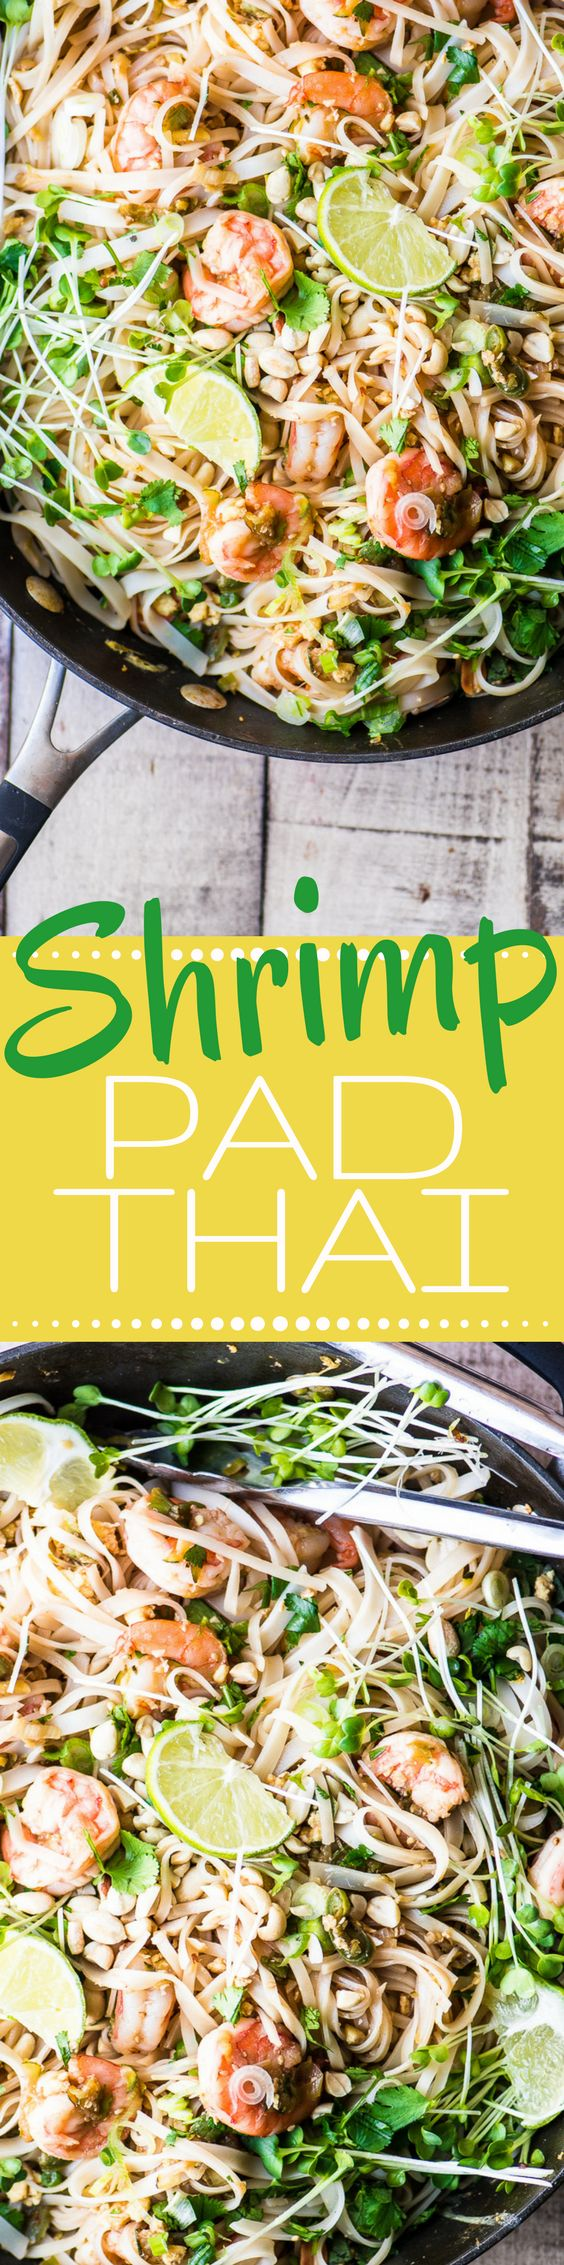 Shrimp Pad Thai is a healthy stir fry noodle bowl that is so much better than take out! | Asian | Thai | gluten free | seafood | (Gluten Free Recipes Shrimp)